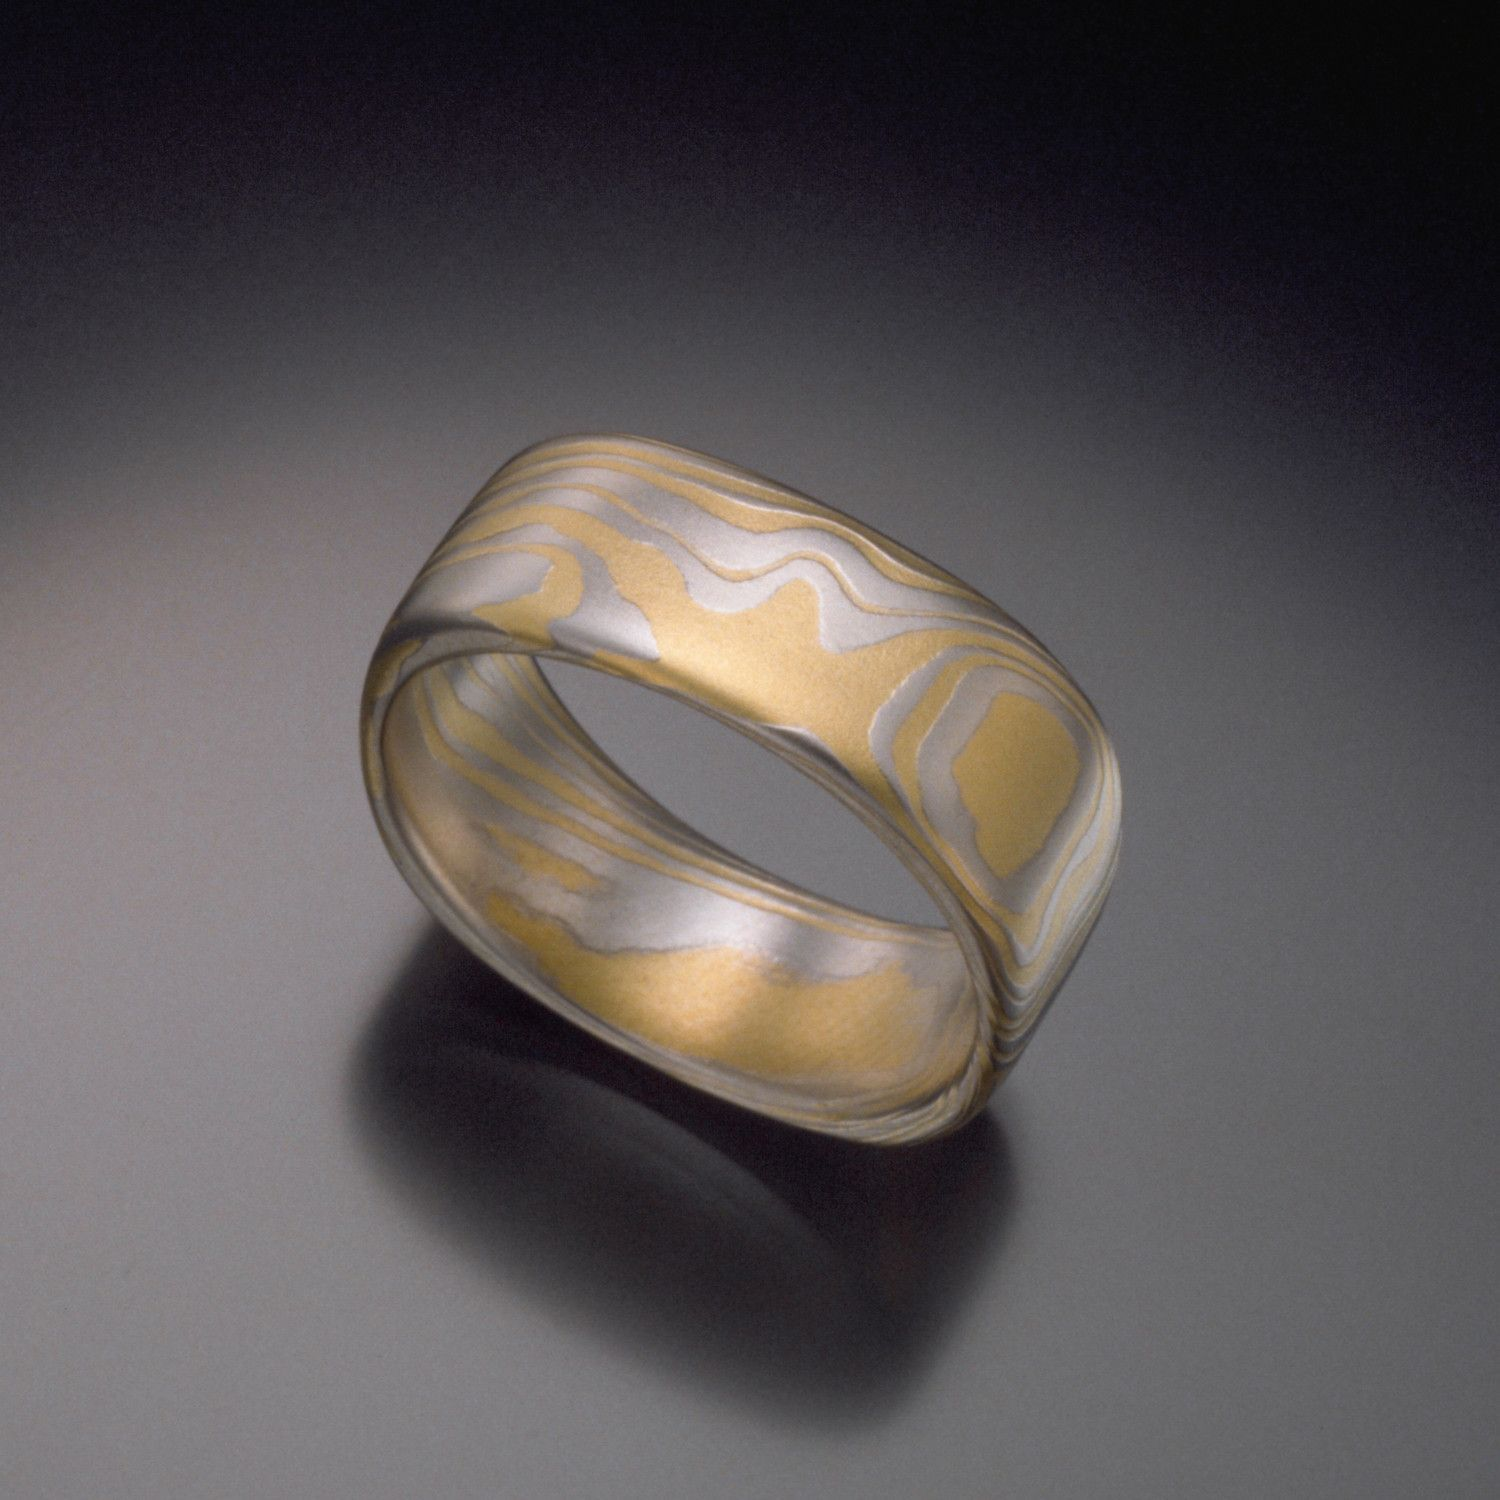 Square 6mm Platinum 18K Gold Mokume Gane Ring TERRA Wedding